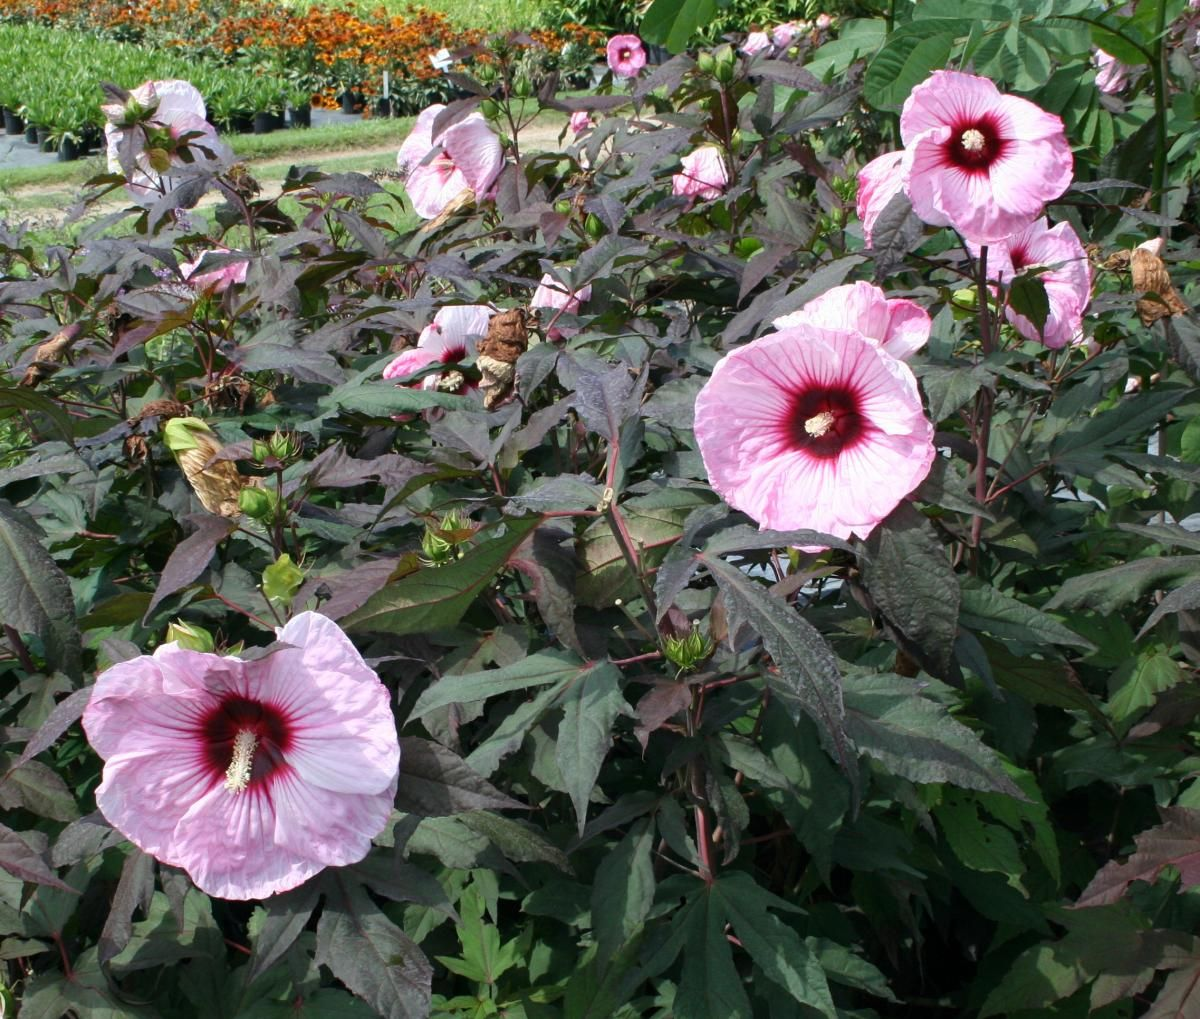 Copper king hardy hibiscus mature